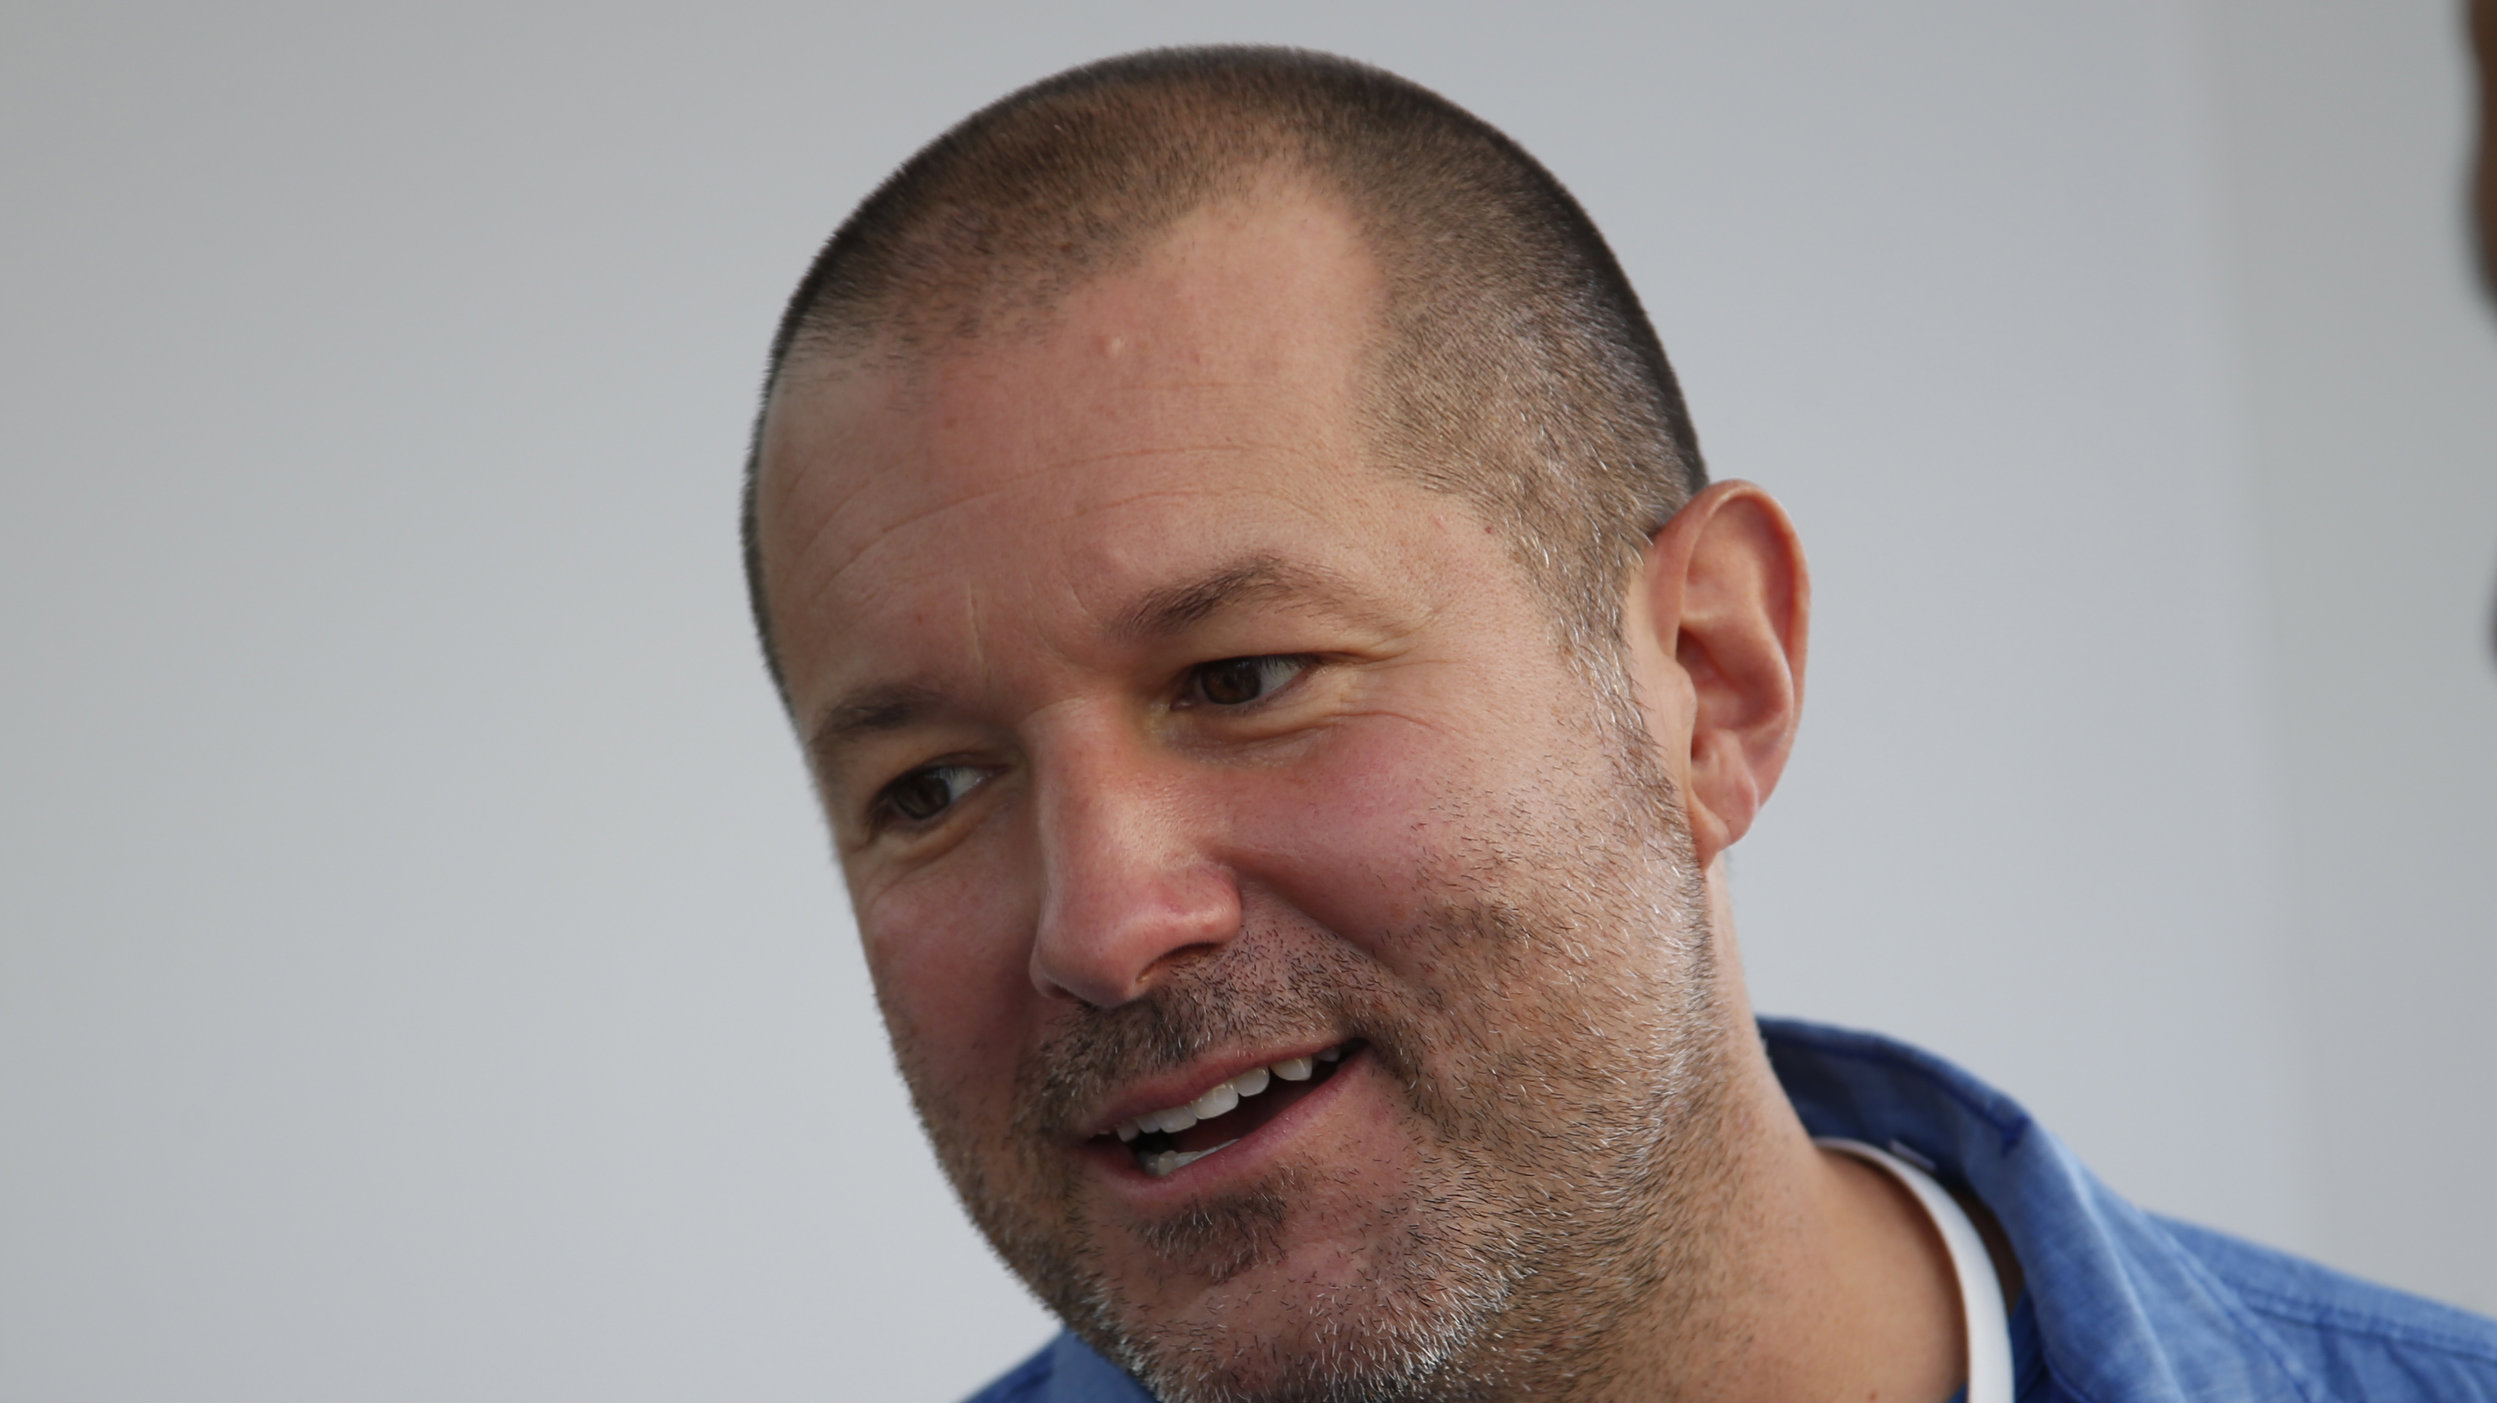 Jonathan Ive, Senior Vice President of Design at Apple Inc. speaks to members of the media during an Apple event announcing the iPhone 6 and the Apple Watch at the Flint Center in Cupertino, California, September 9, 2014. REUTERS/Stephen Lam